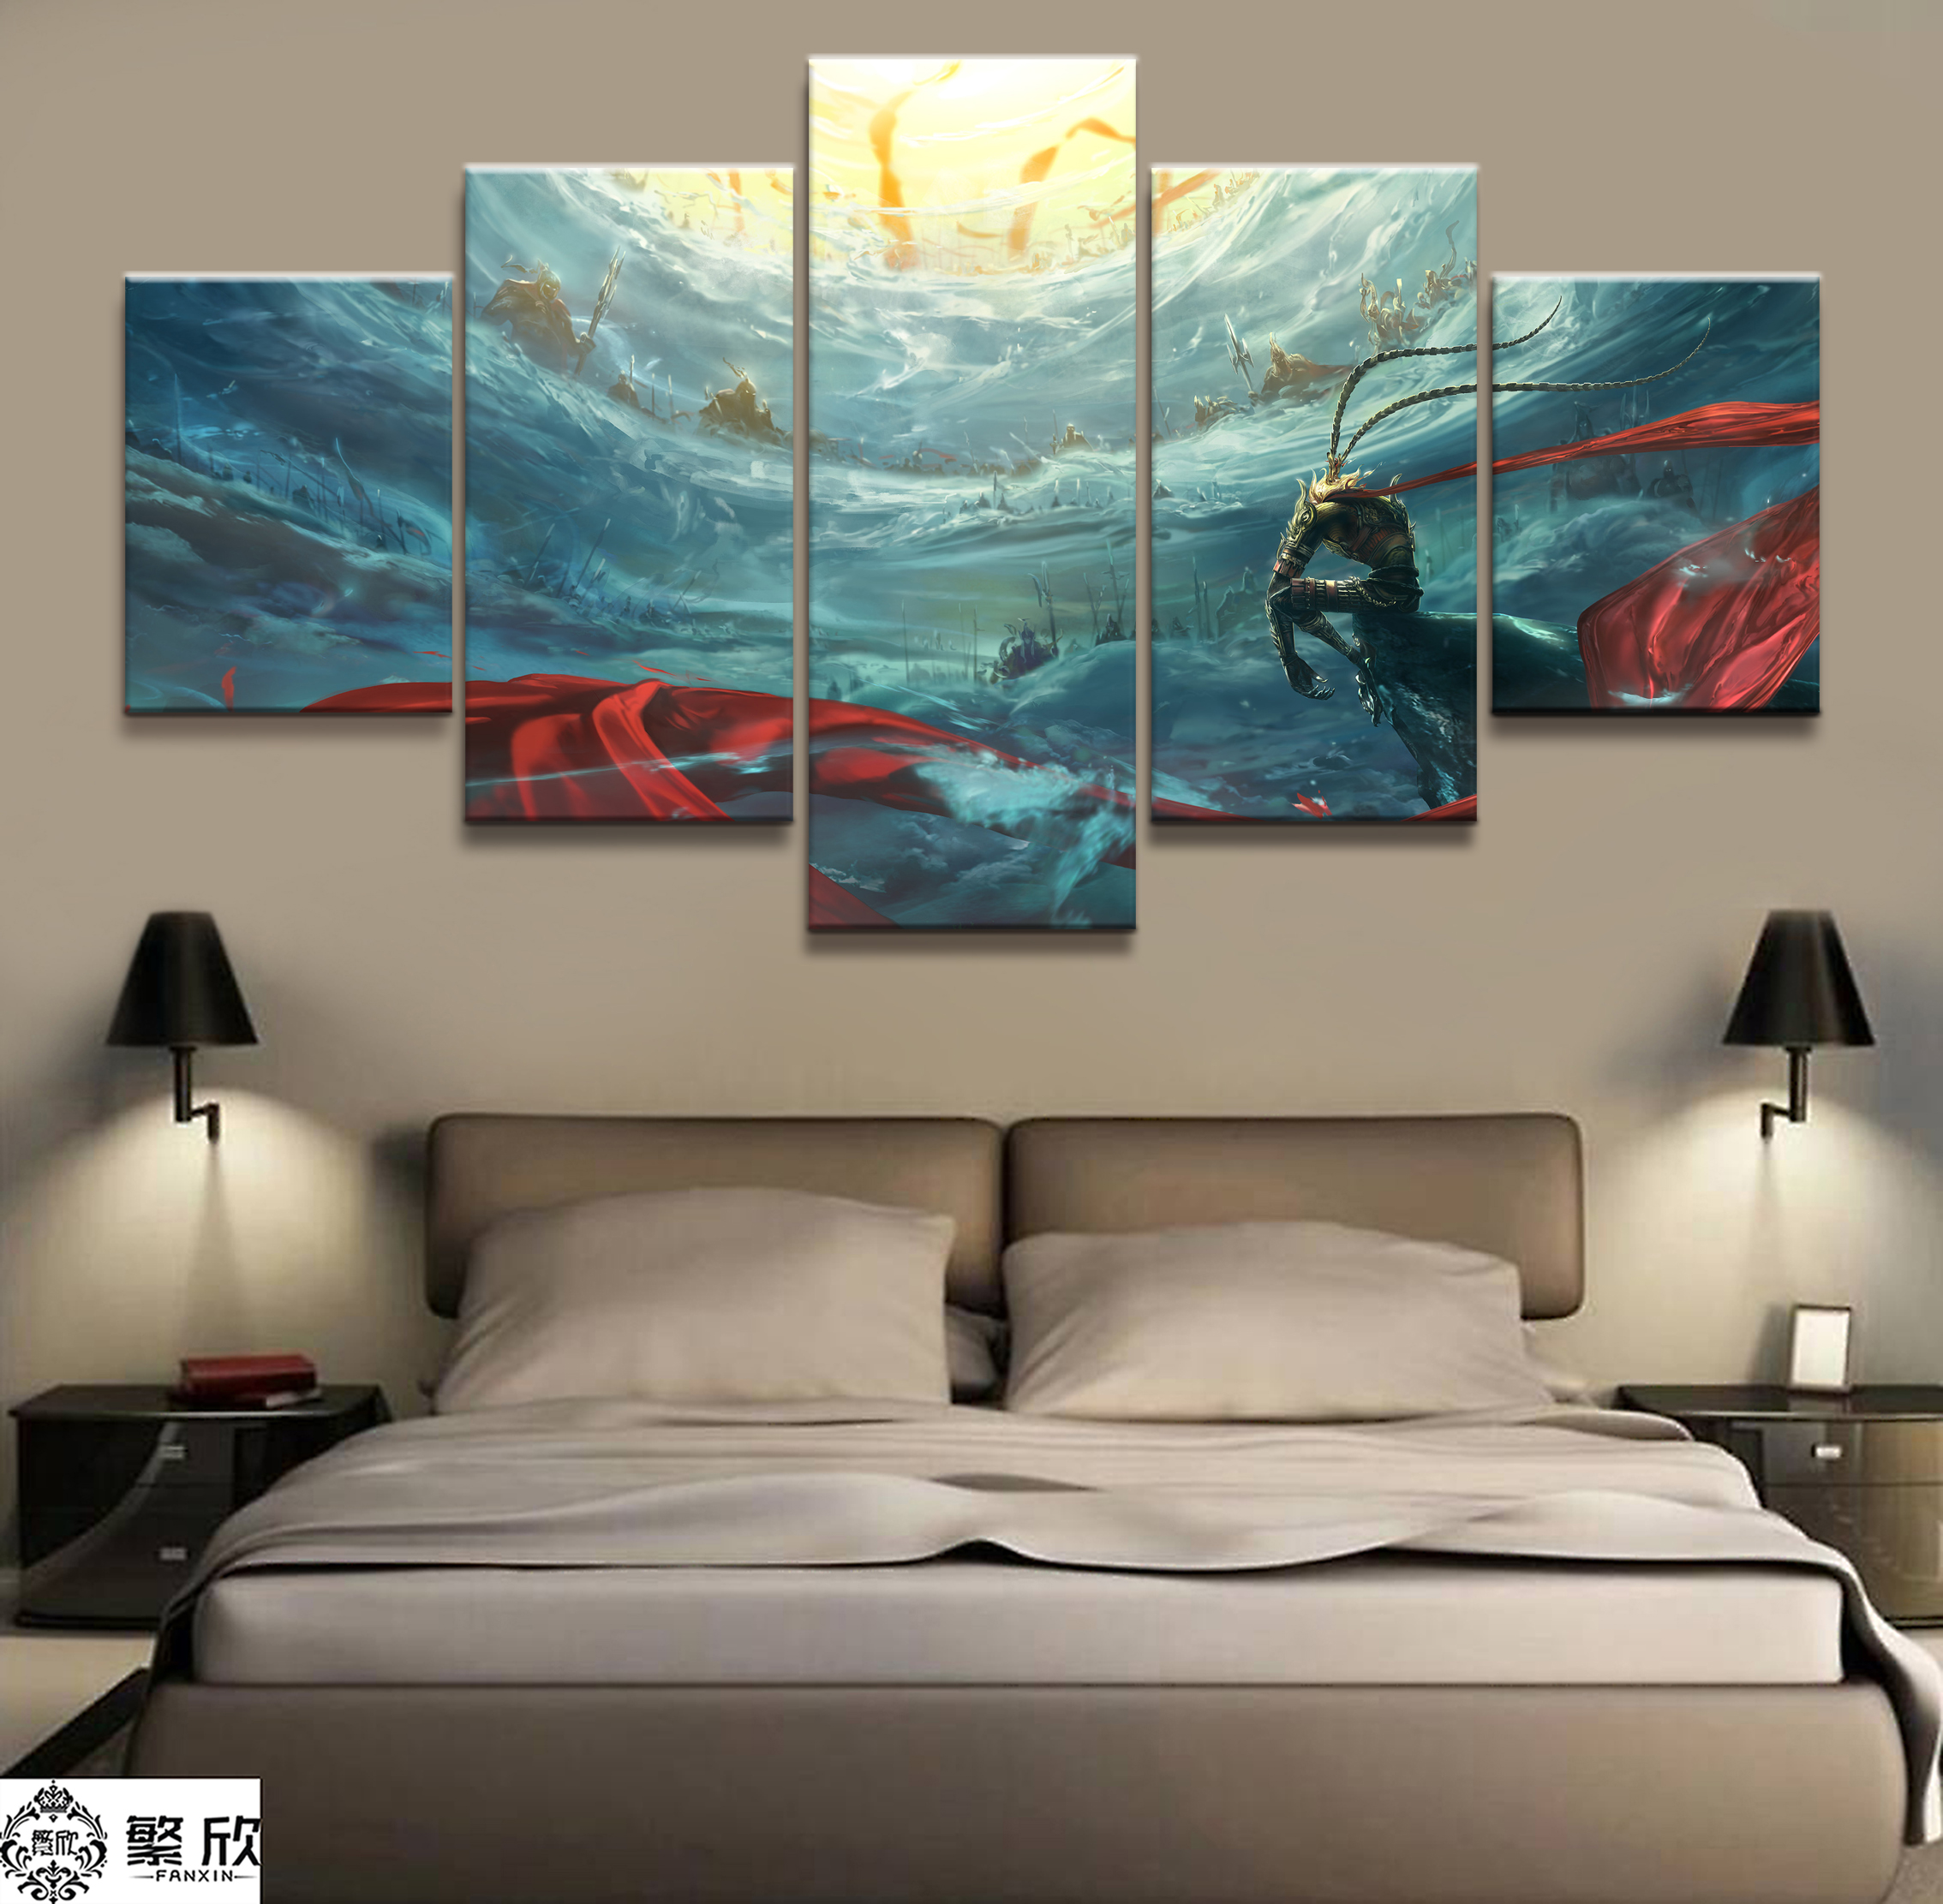 5 Piece Animation Movie Havoc in Heaven Sun WuKong Poster Paintings on Canvas Fort Cartoon Pictures Decor Canvas Wholesale(China)